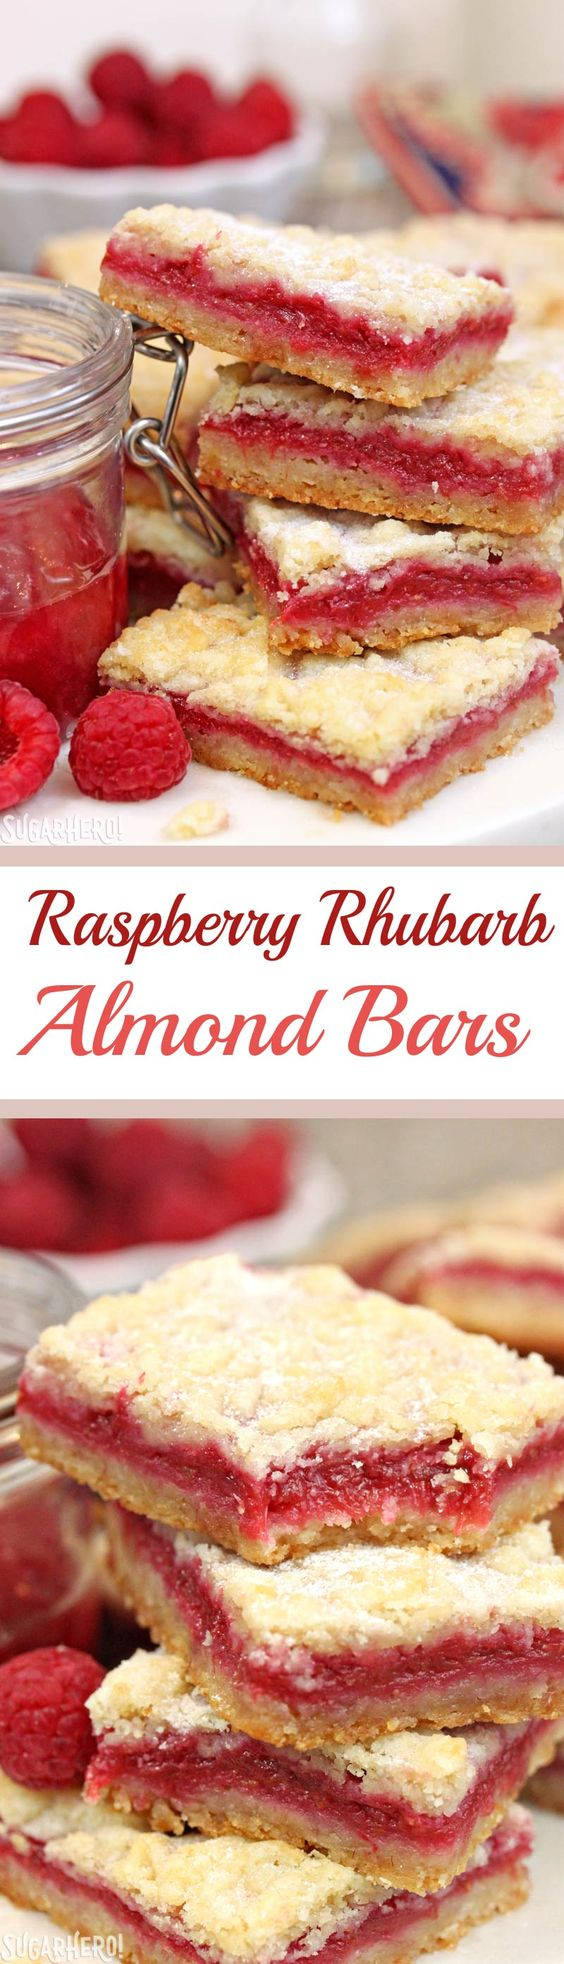 ... Rhubarb Almond Bars | Recipe | Almonds, Raspberry rhubarb and Bar